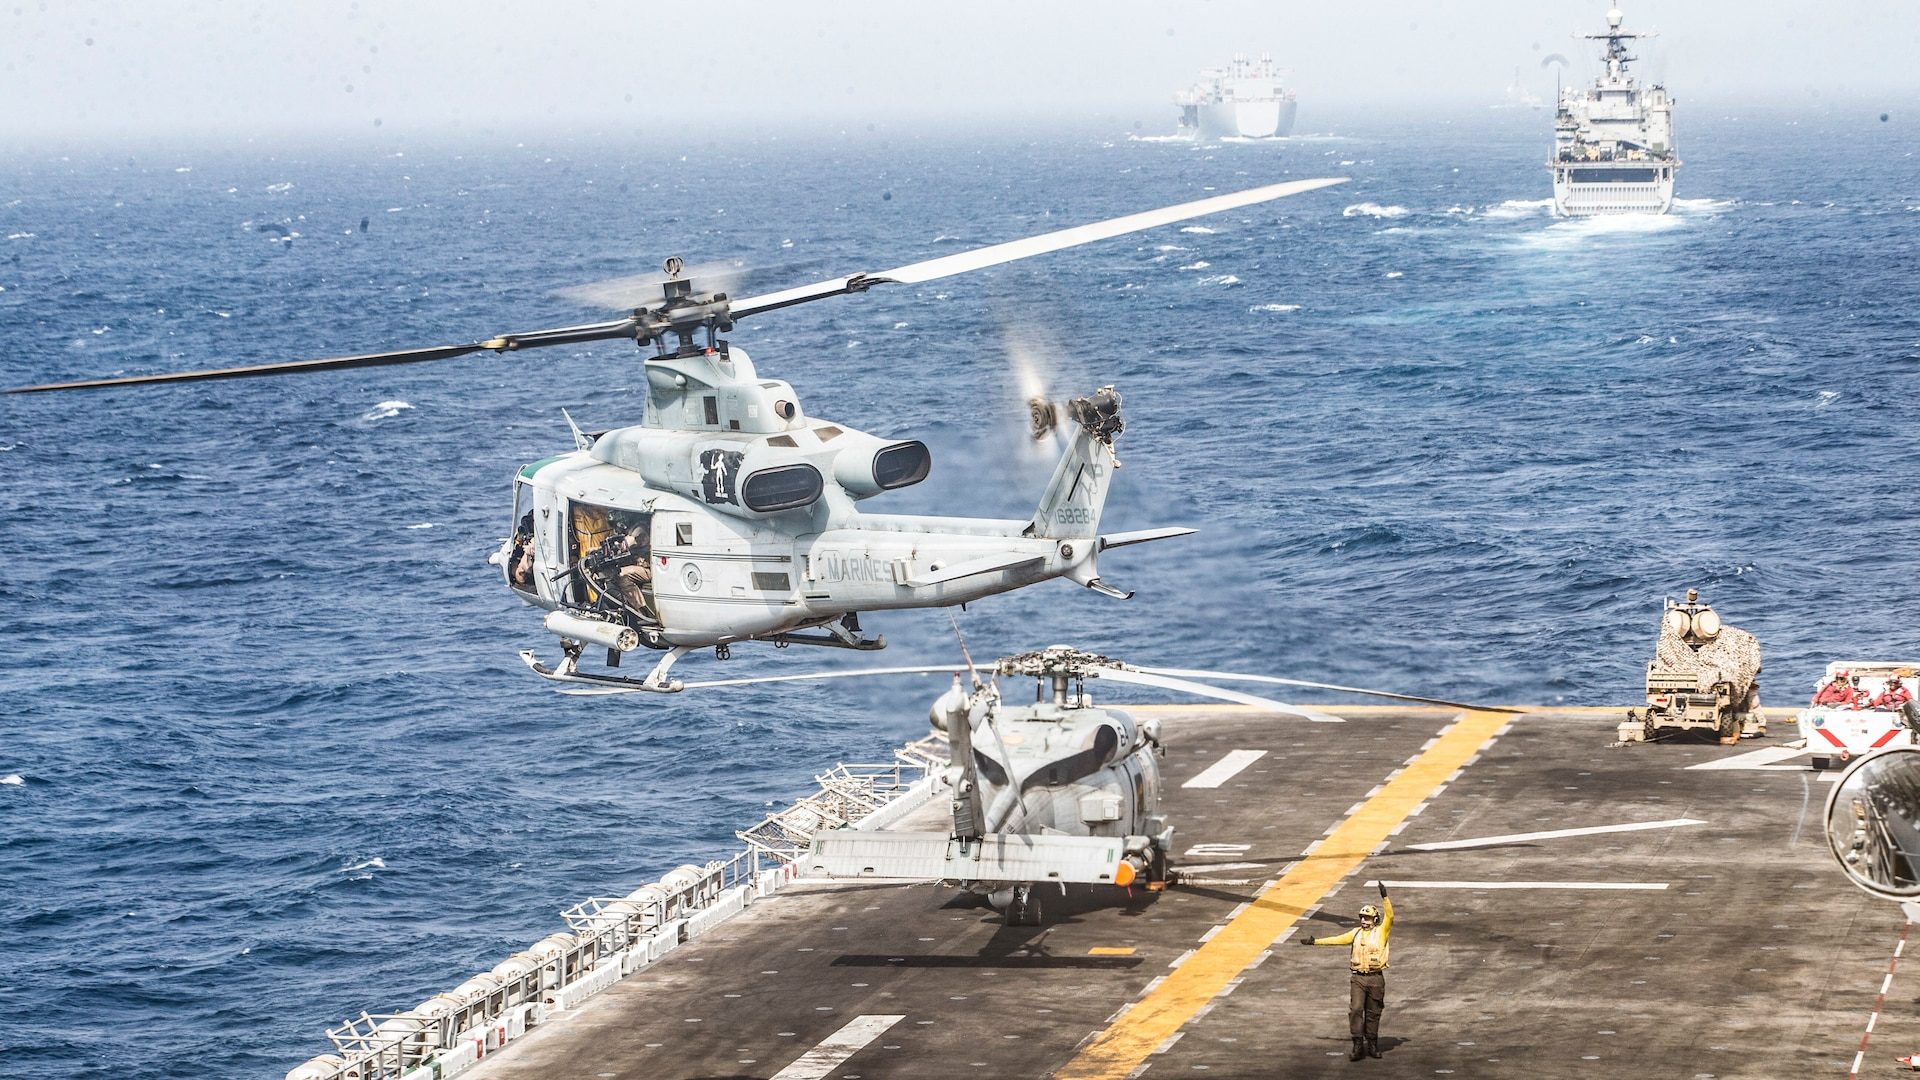 UH-1Y Venom helicopter takes off from flight deck of USS Boxer, Strait of Hormuz, July 18, 2019 (U.S. Marine Corps/Dalton Swanbeck)